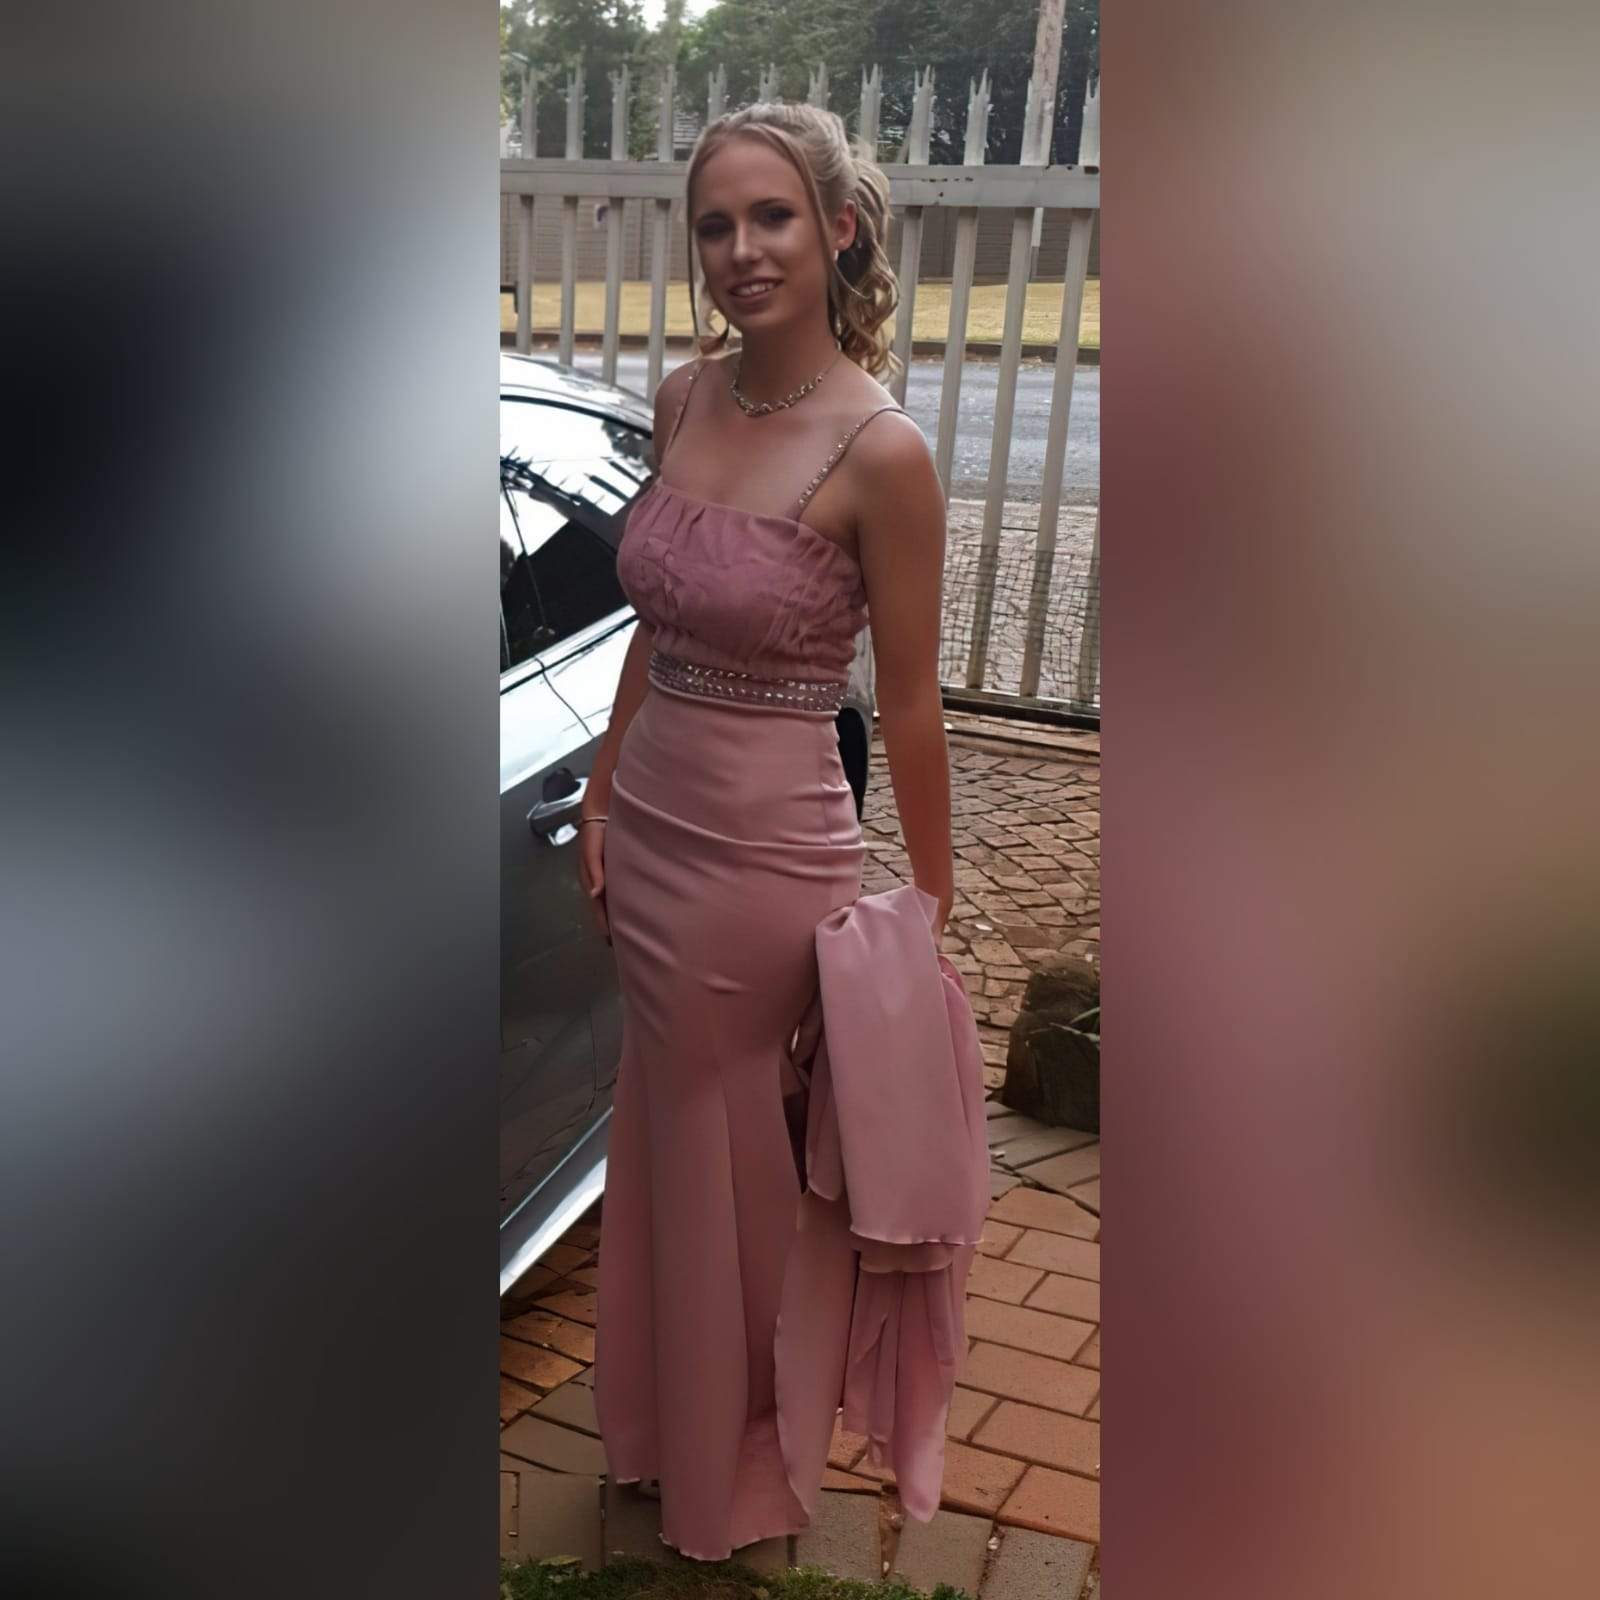 Dusty pink soft mermaid matric dress with a pleated bodice 8 dusty pink soft mermaid matric dress with a pleated bodice, with a train. Extra detachable chiffon train with a beaded belt and removable shoulder straps